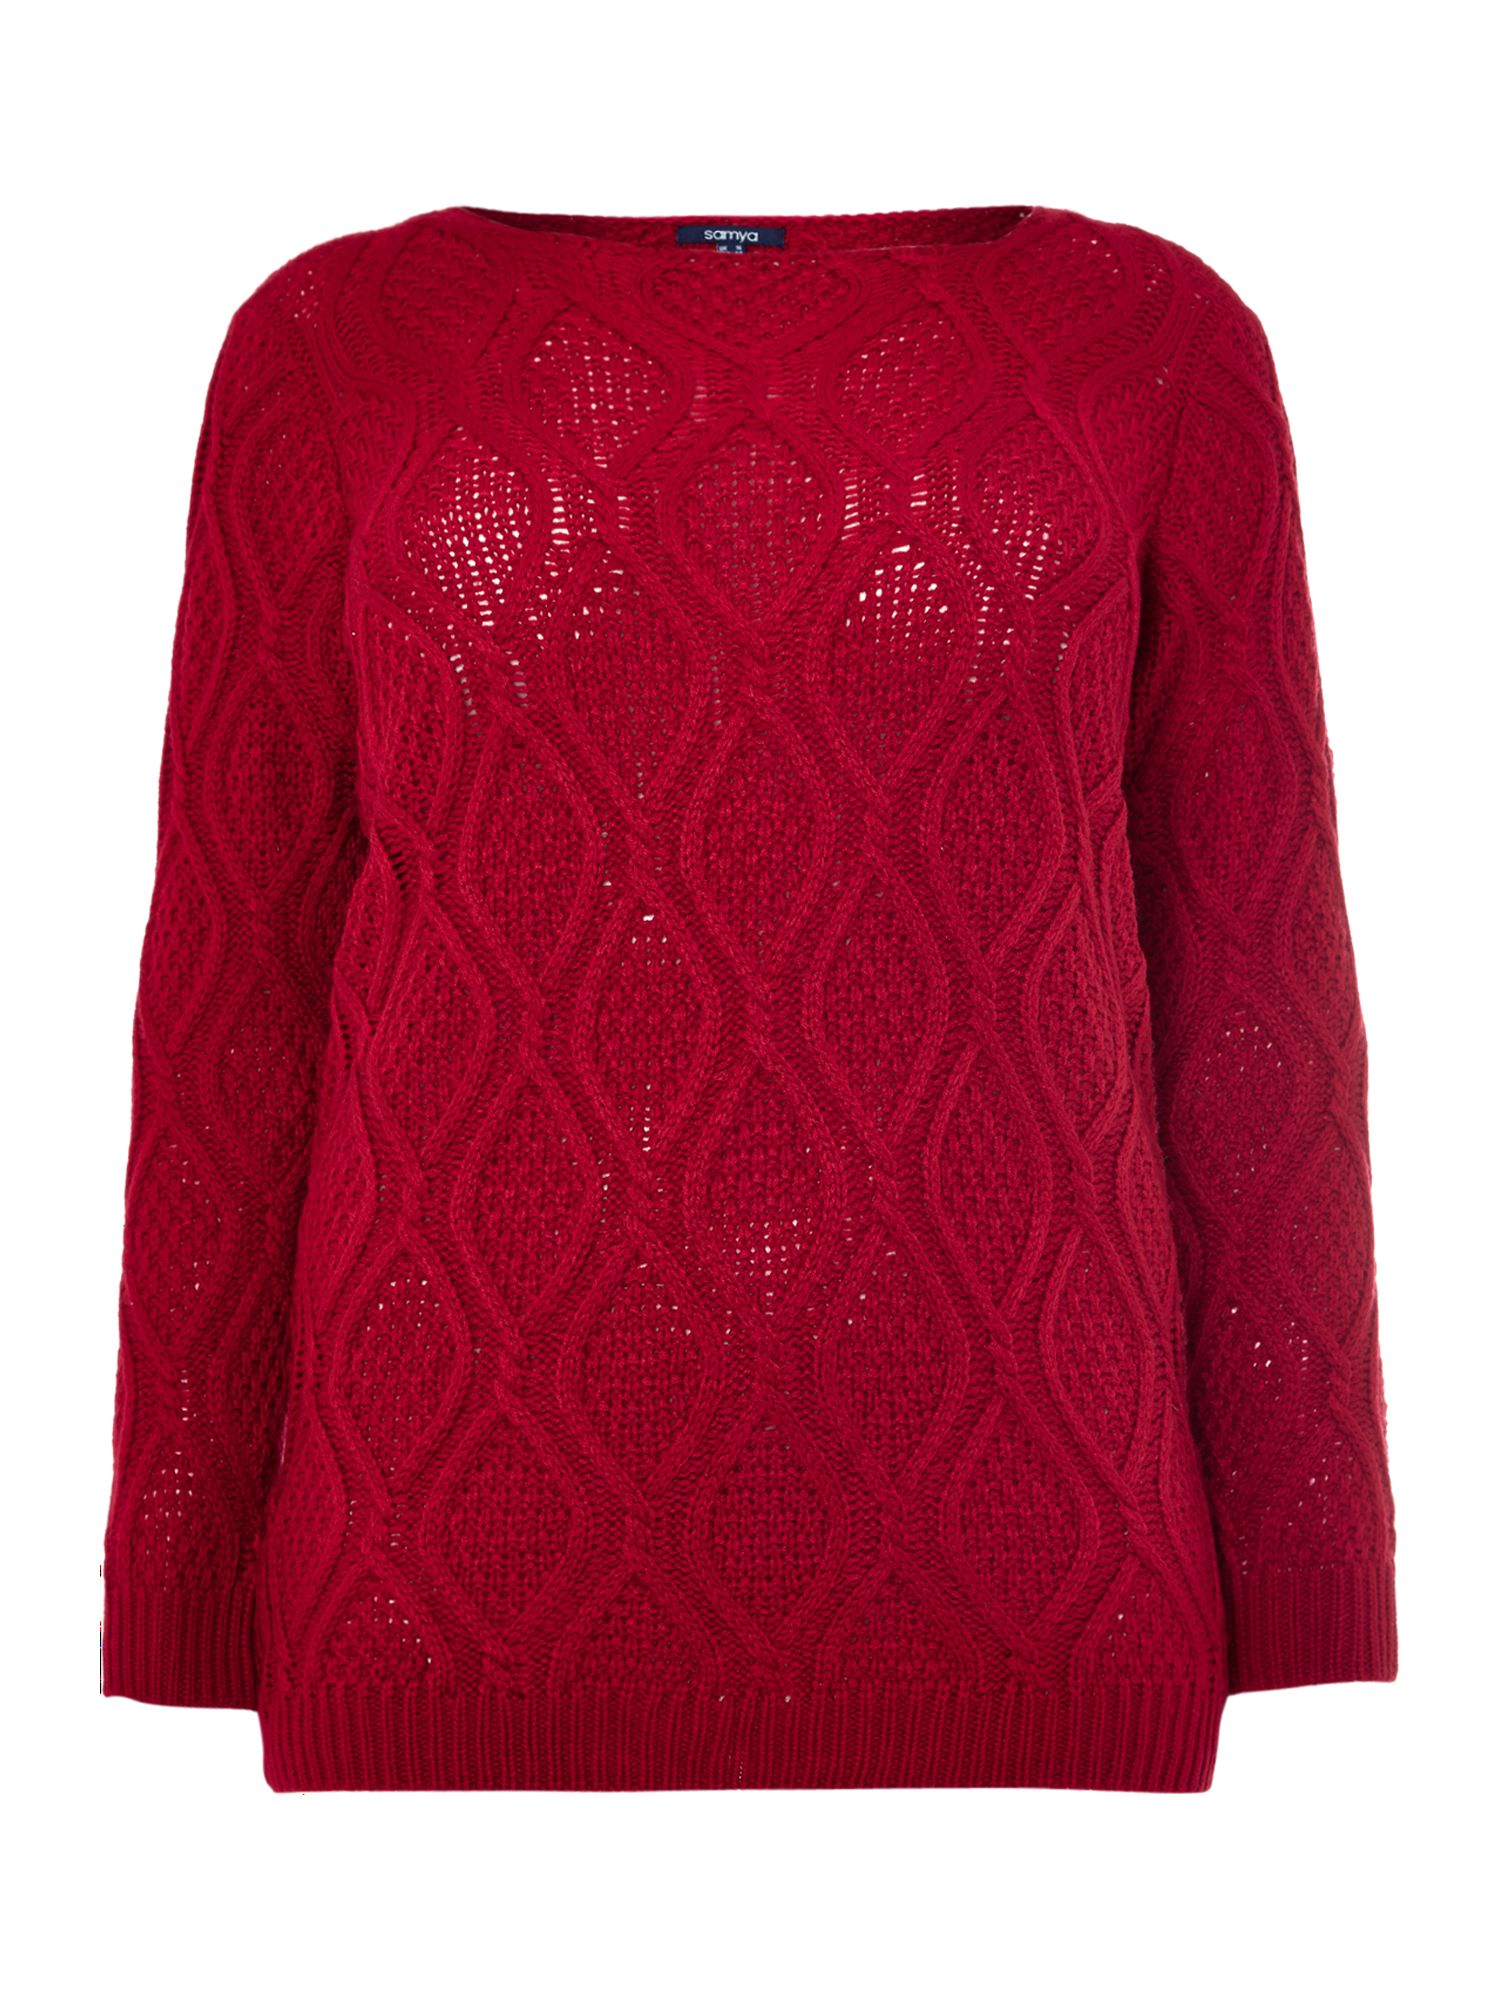 Textured pattern knit jumper